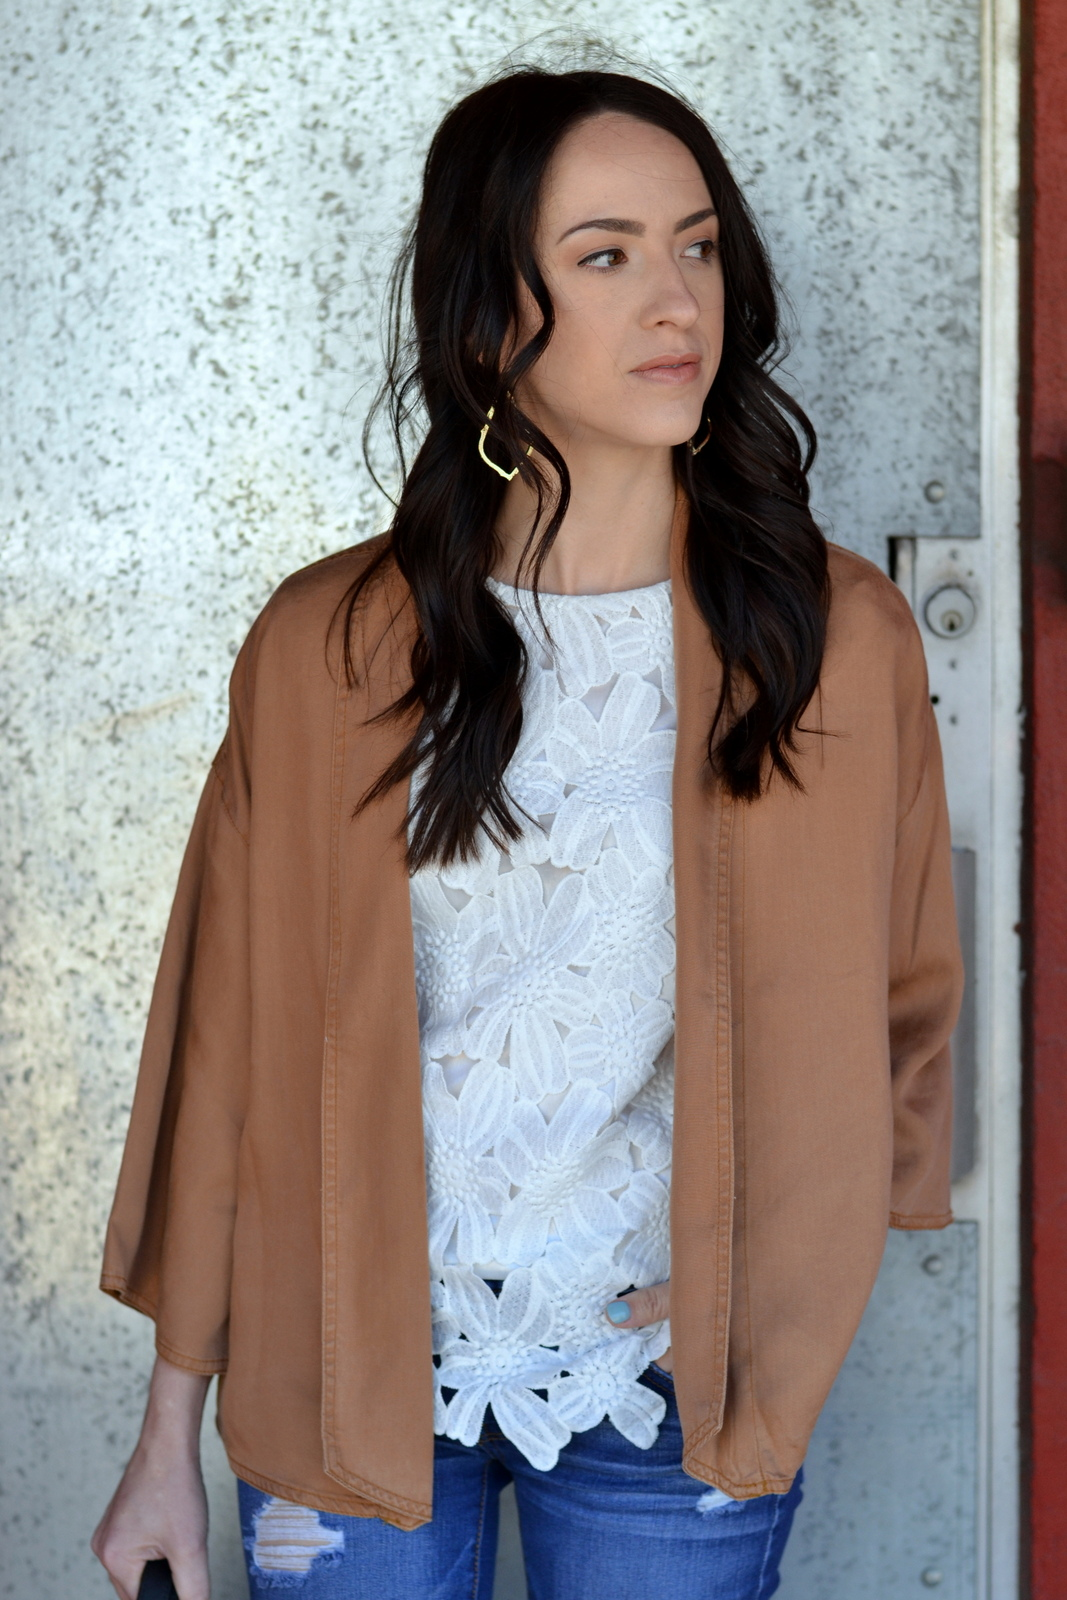 Casual Spring White Floral Top and Cognac Jacket